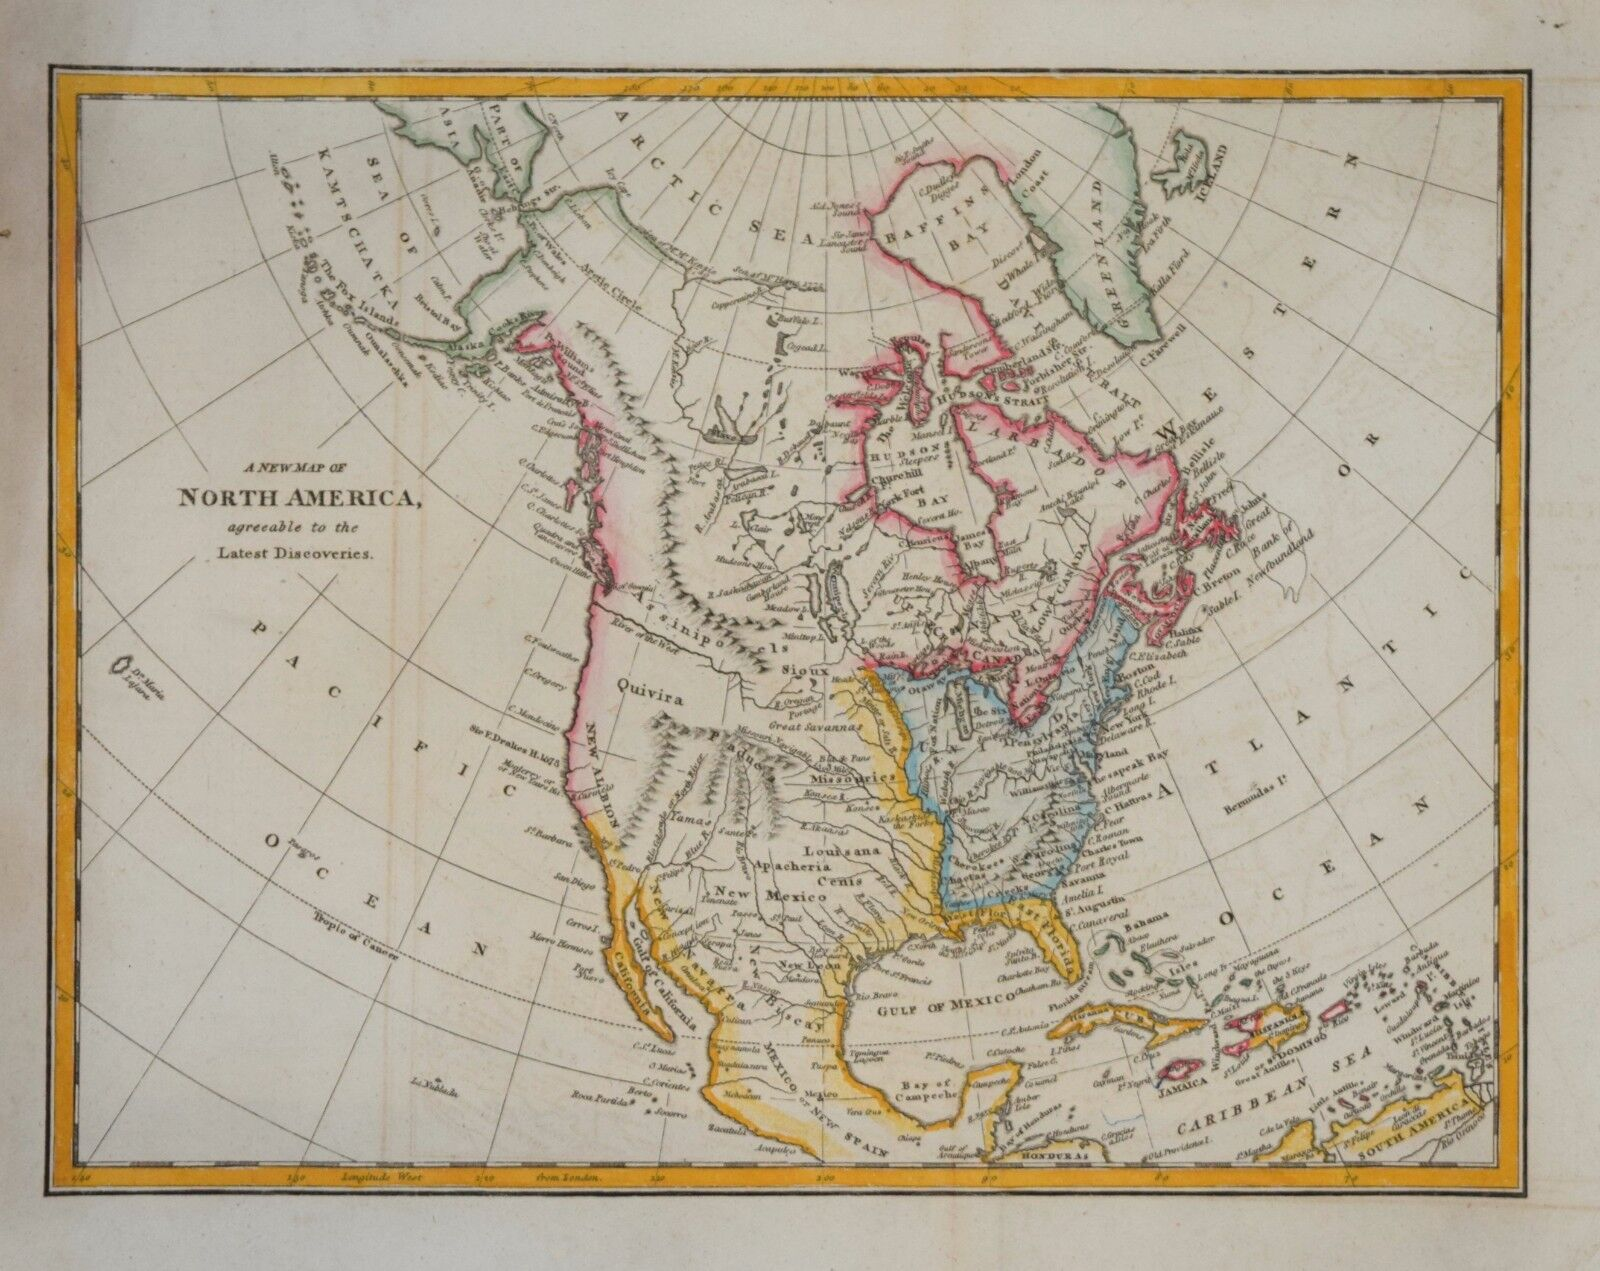 Maps Atlases Globes Antiques - Robert wilkinson map of the us